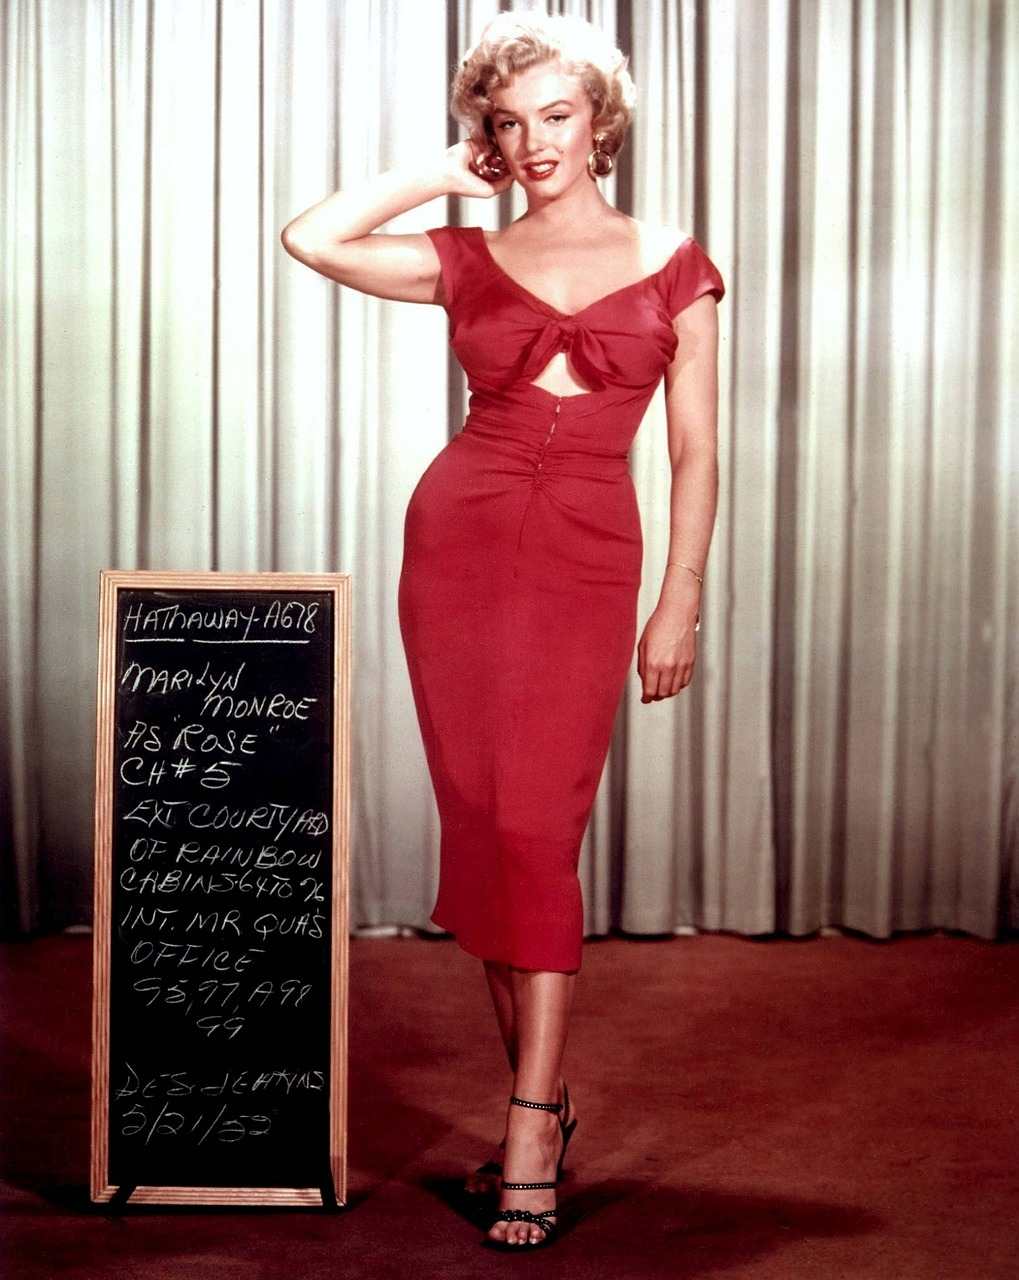 6 red dresses that made history!